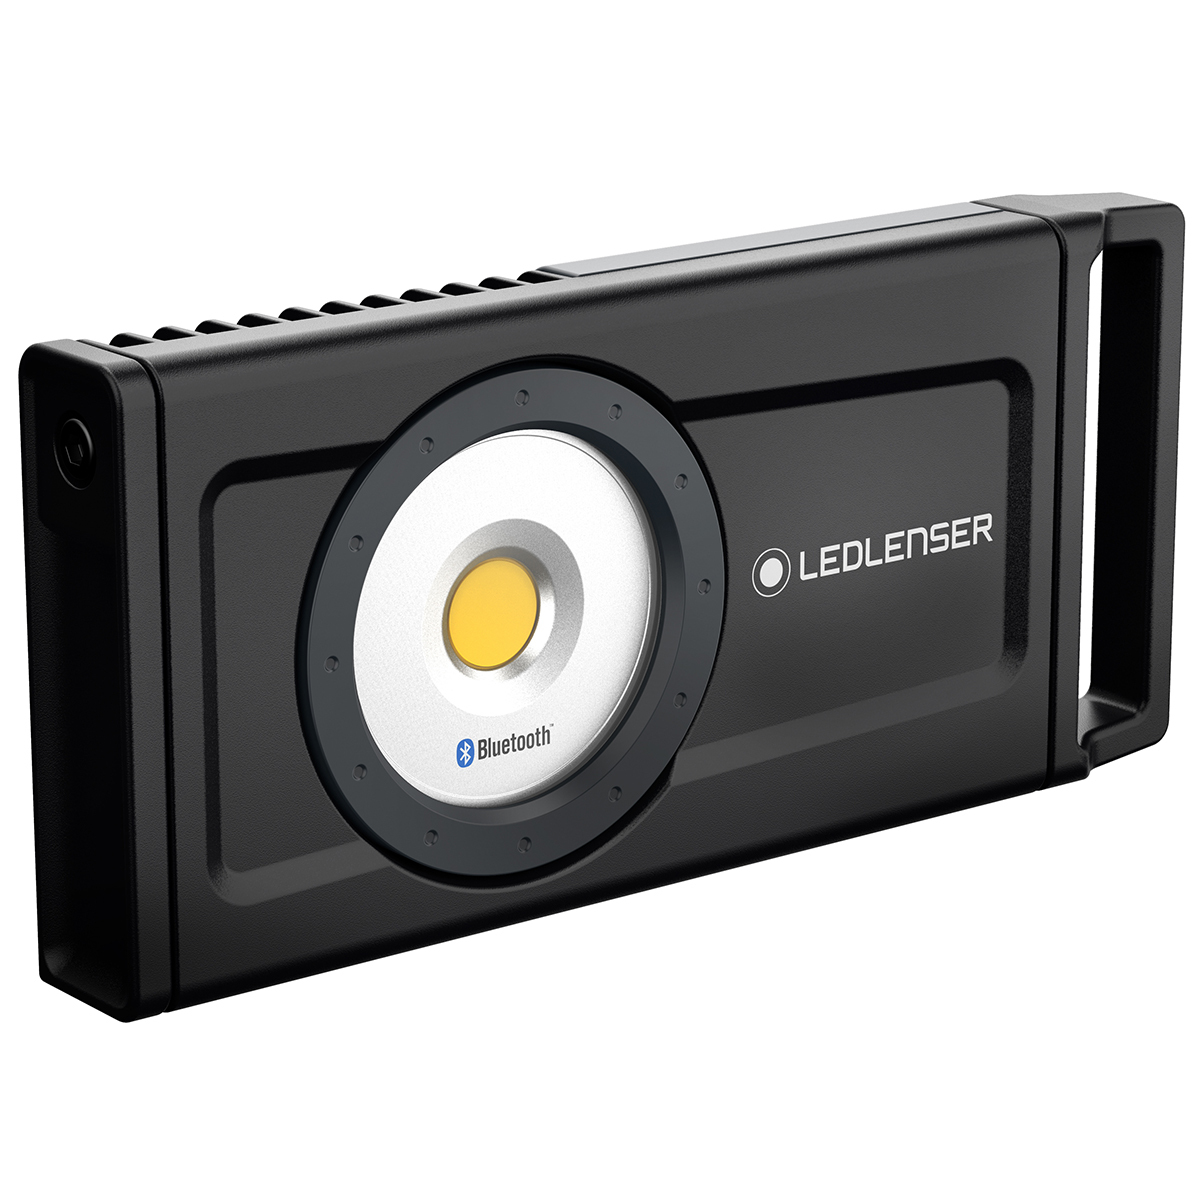 LEDLENSER LL502002 - iF8R Rechargeable LED Floodlight – Max. 4500 lm